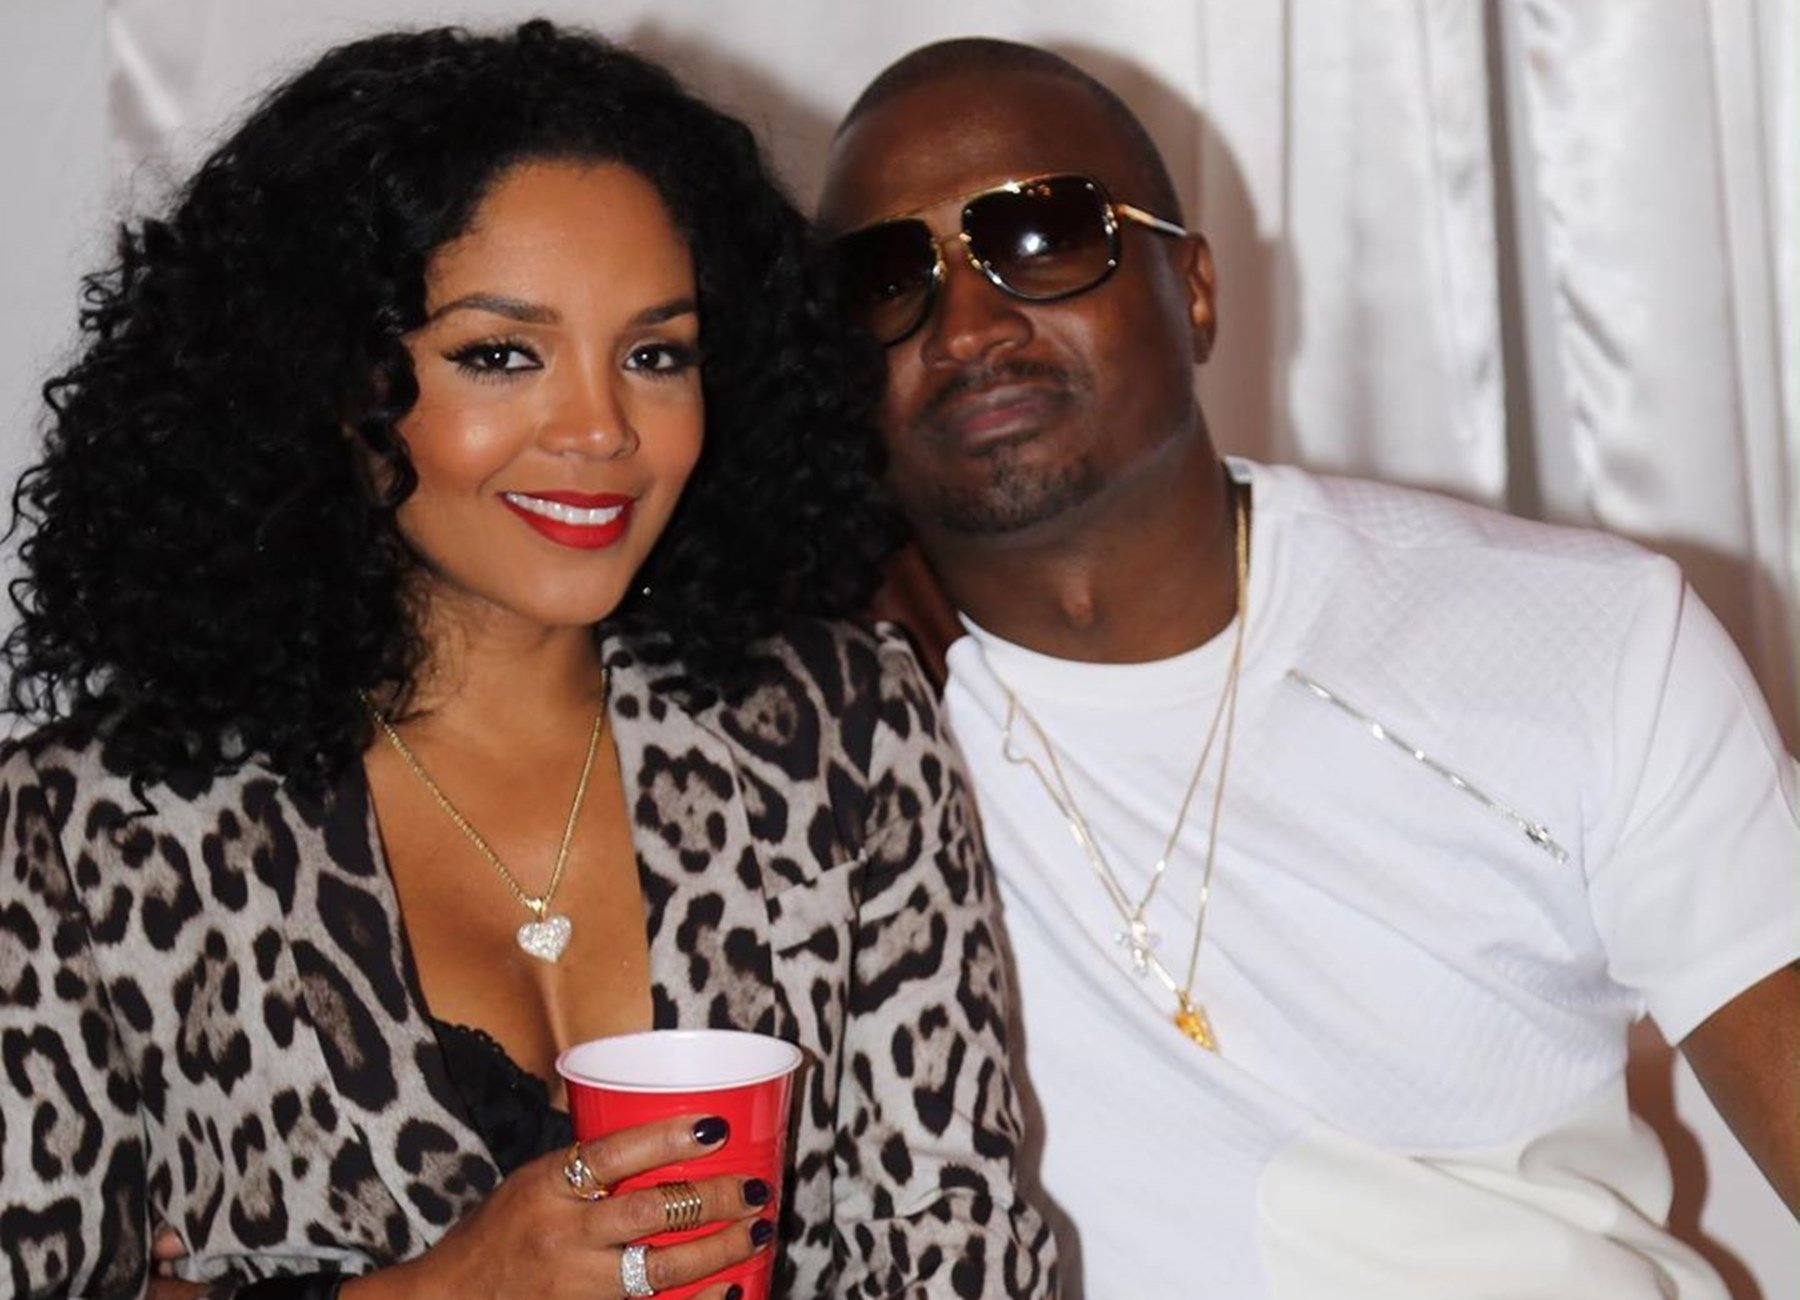 rasheeda-frost-gushes-over-kirk-frost-in-this-video-see-it-here